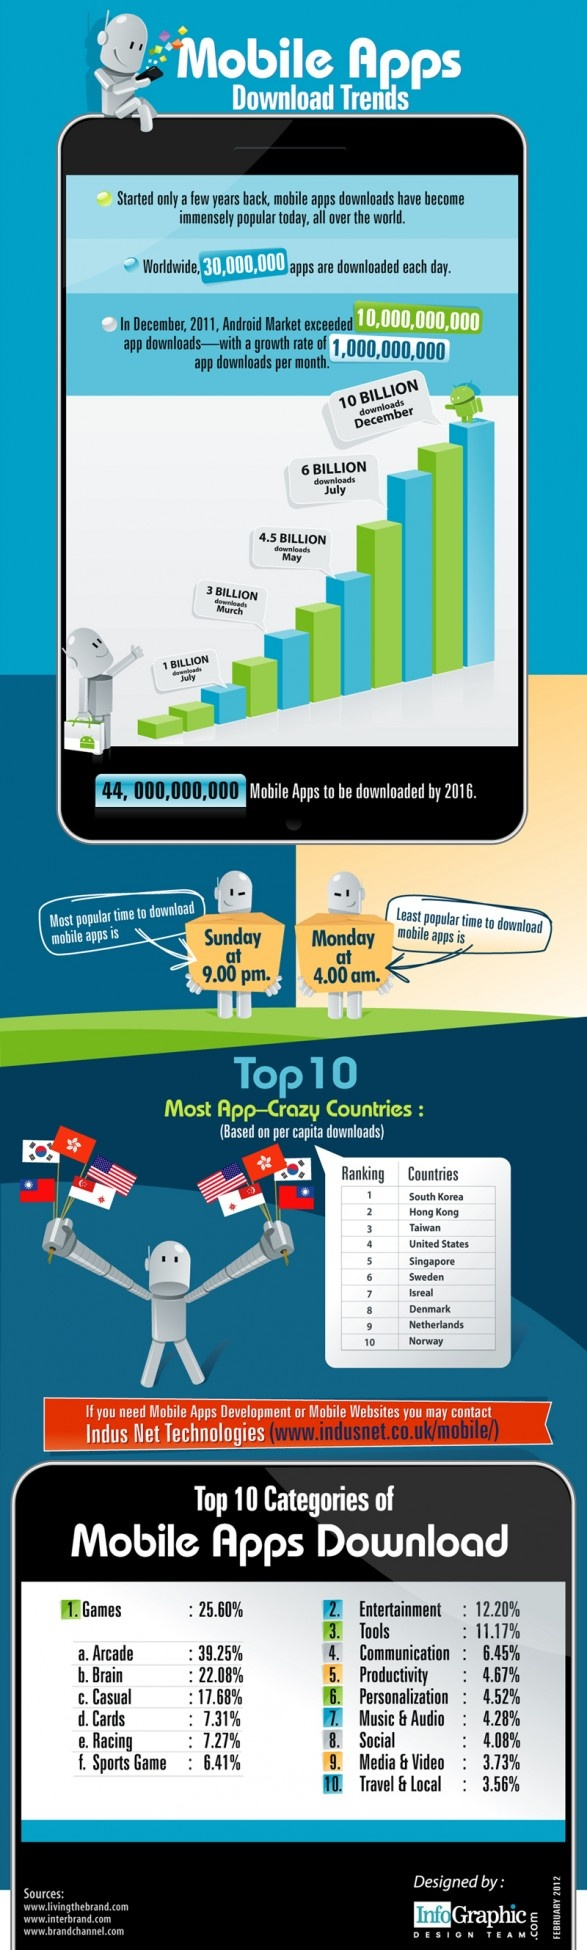 Mobile App Download Trends. Staggering 30 Million Apps downloaded each day.